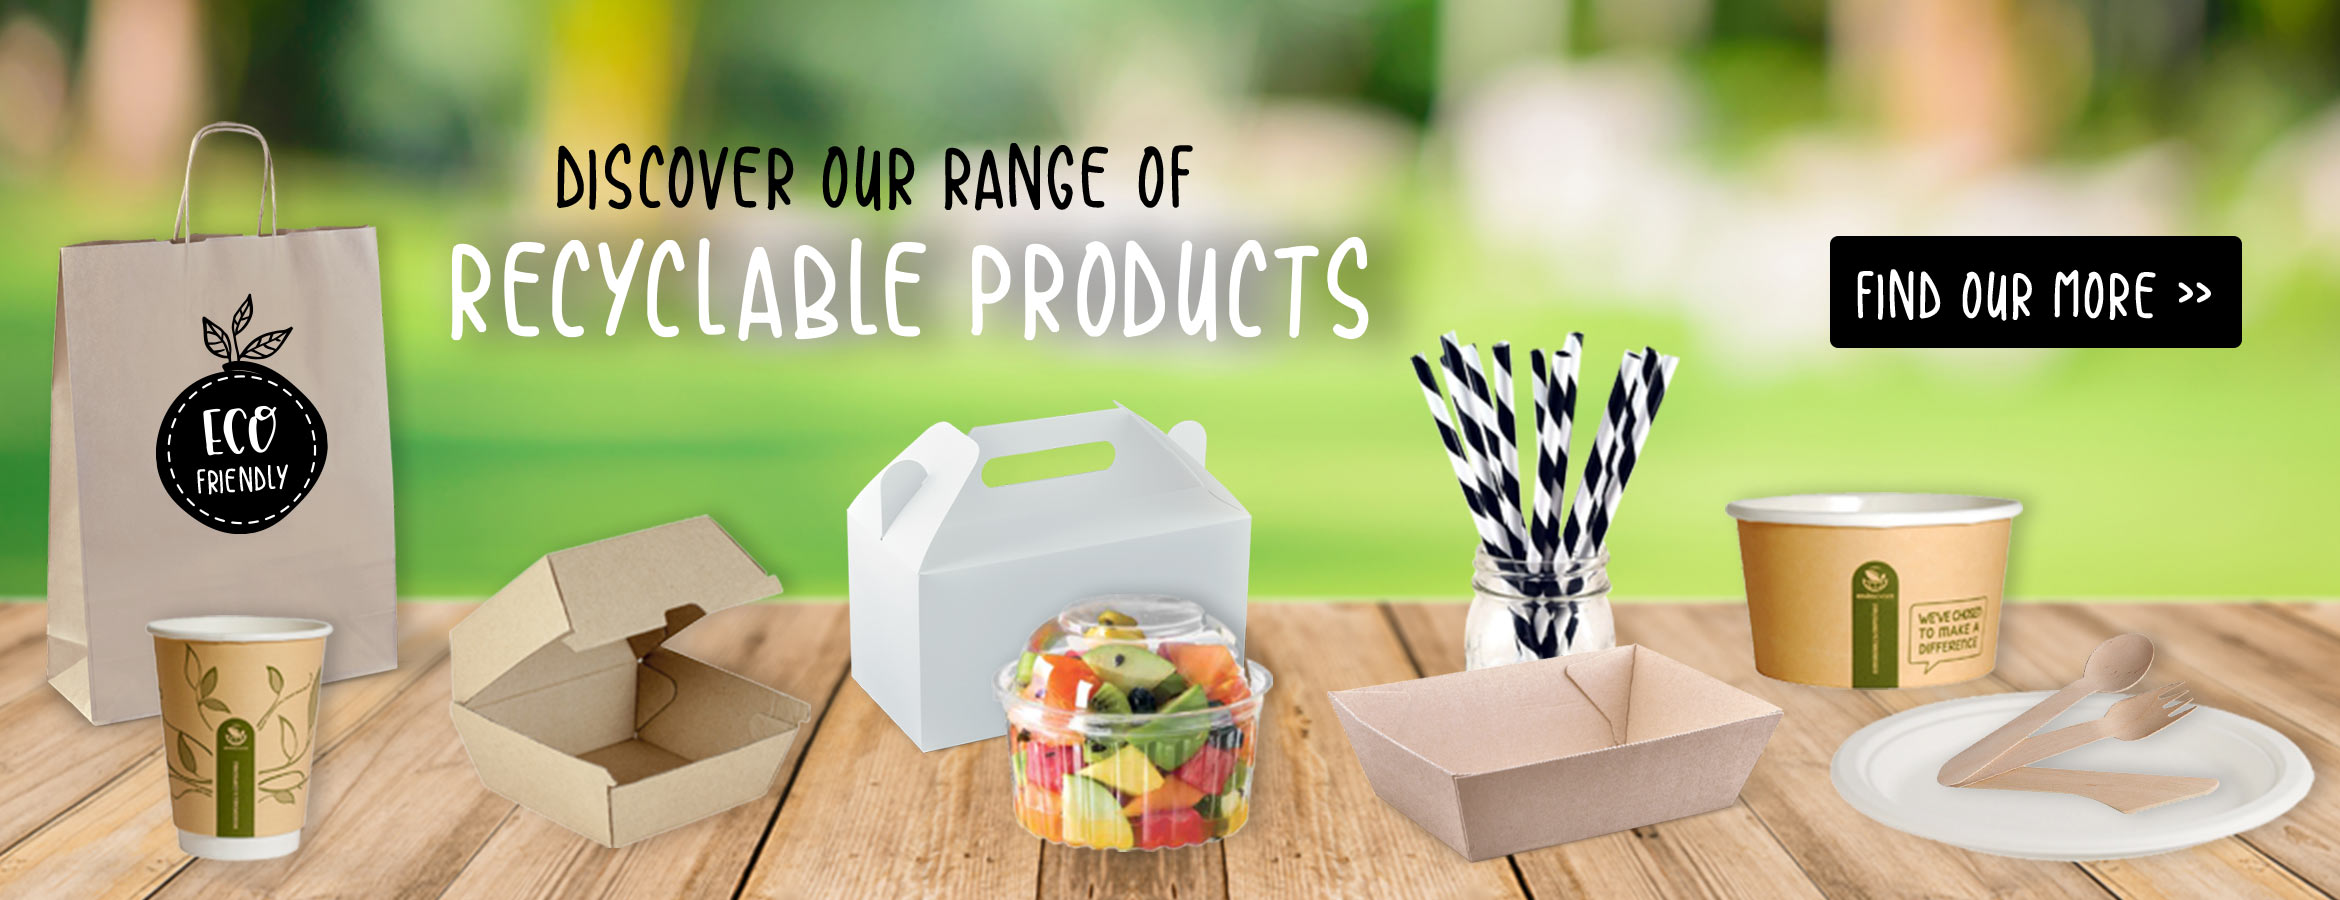 Discover Our Range of Recyclable Products